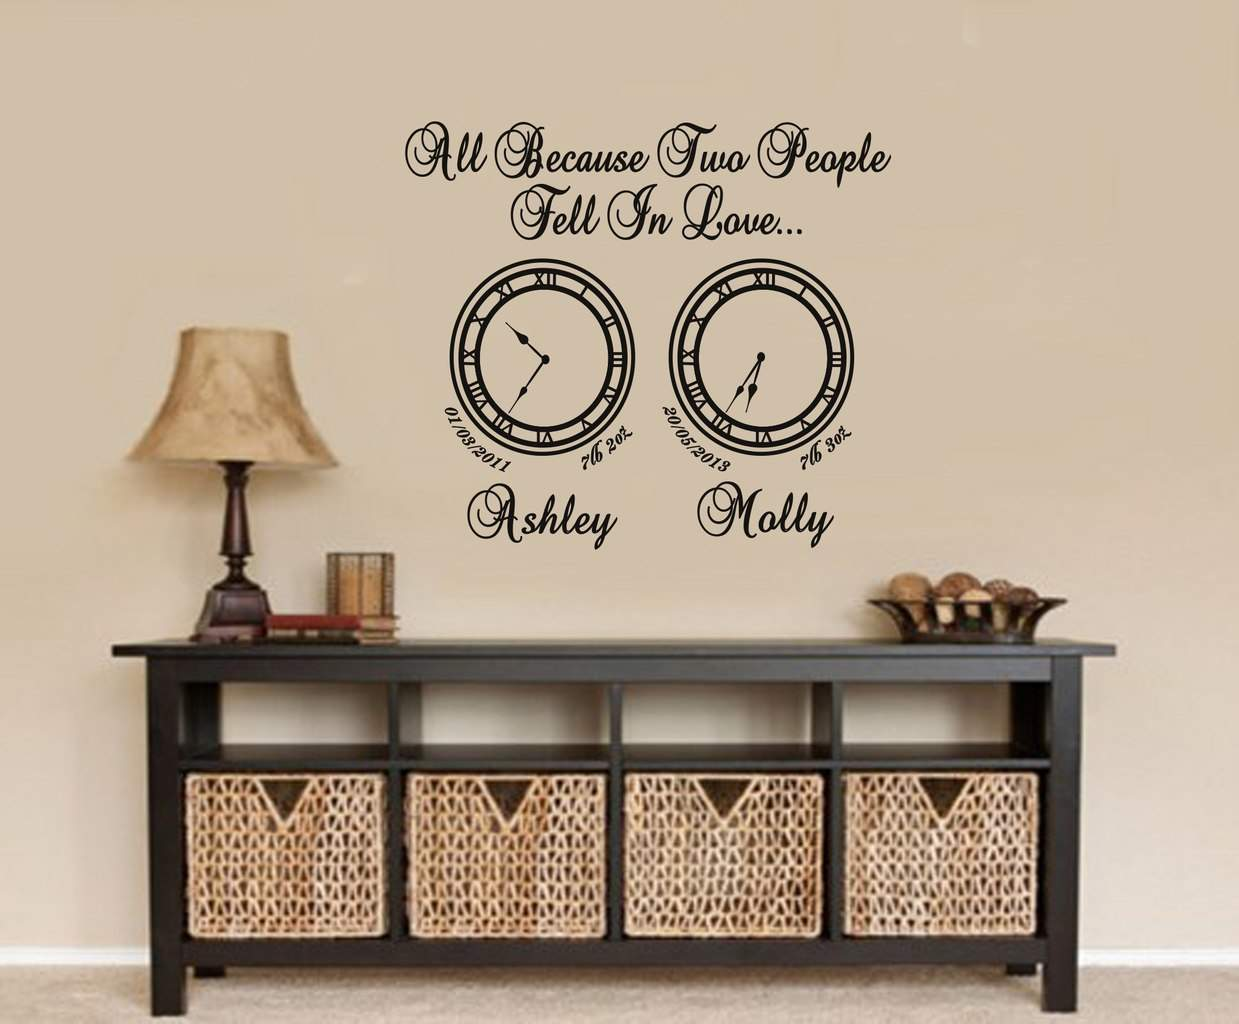 hold the moment with date of birth clock decals by ey memory clocks all because date of birth clocks wall art decal stickers